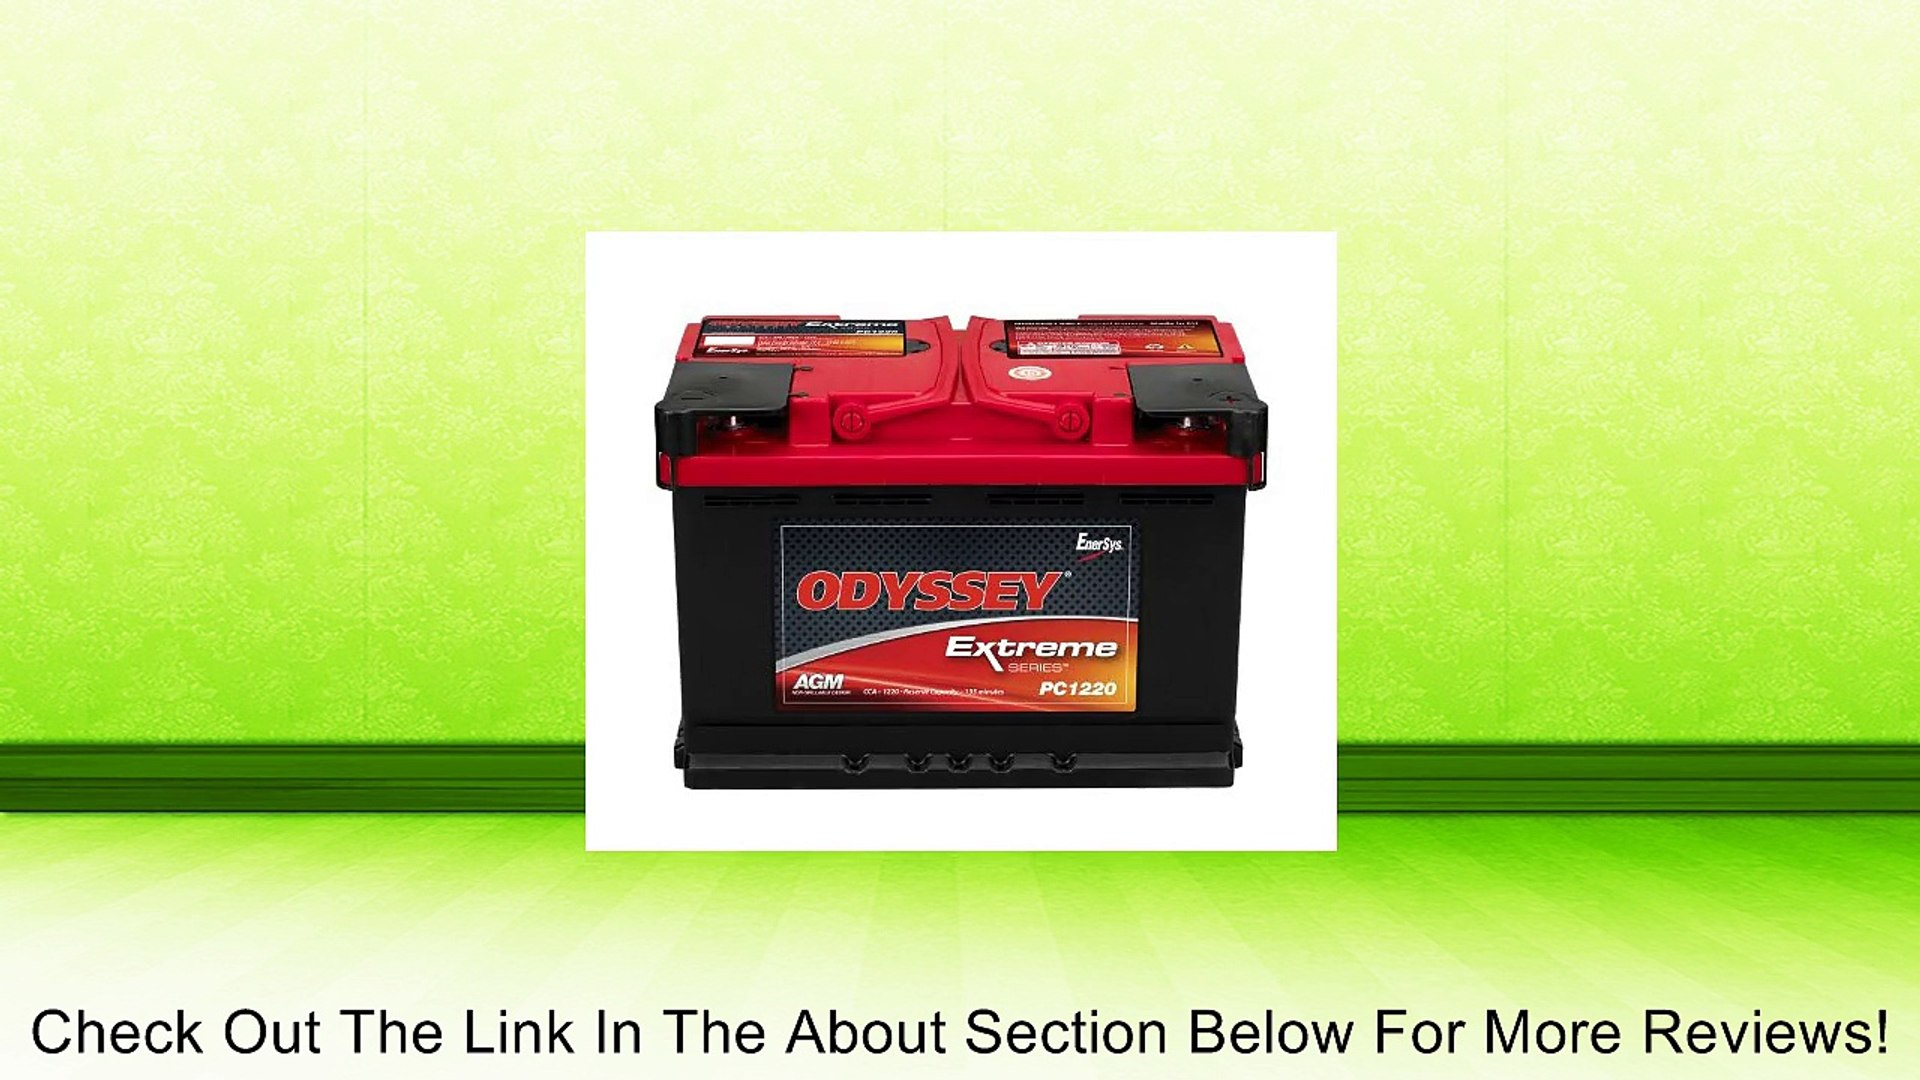 Odyssey Batteries PC1220-A Automotive/Light Truck and Van Battery Review